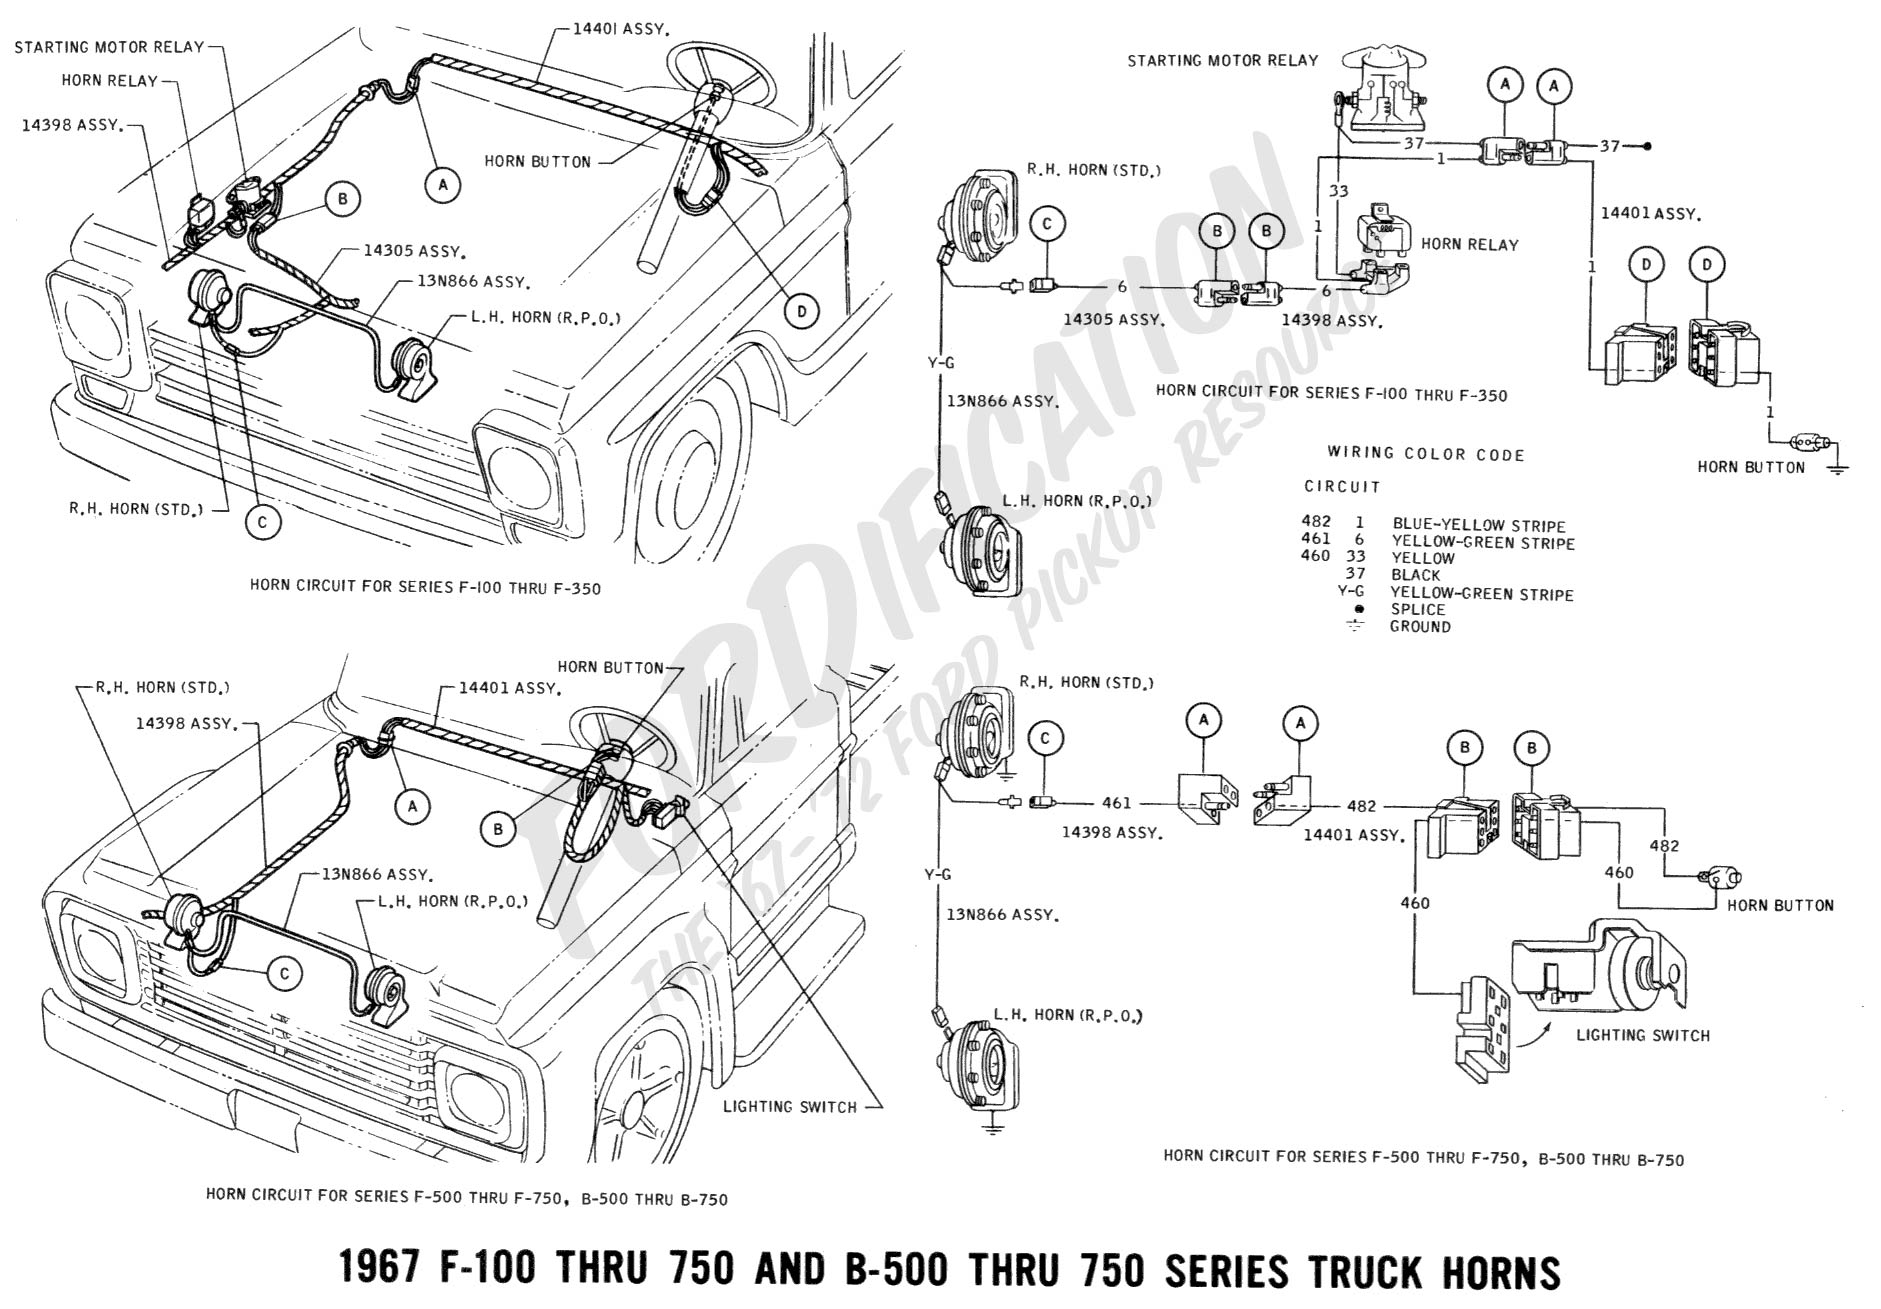 1967 Ford mustang horn relay location